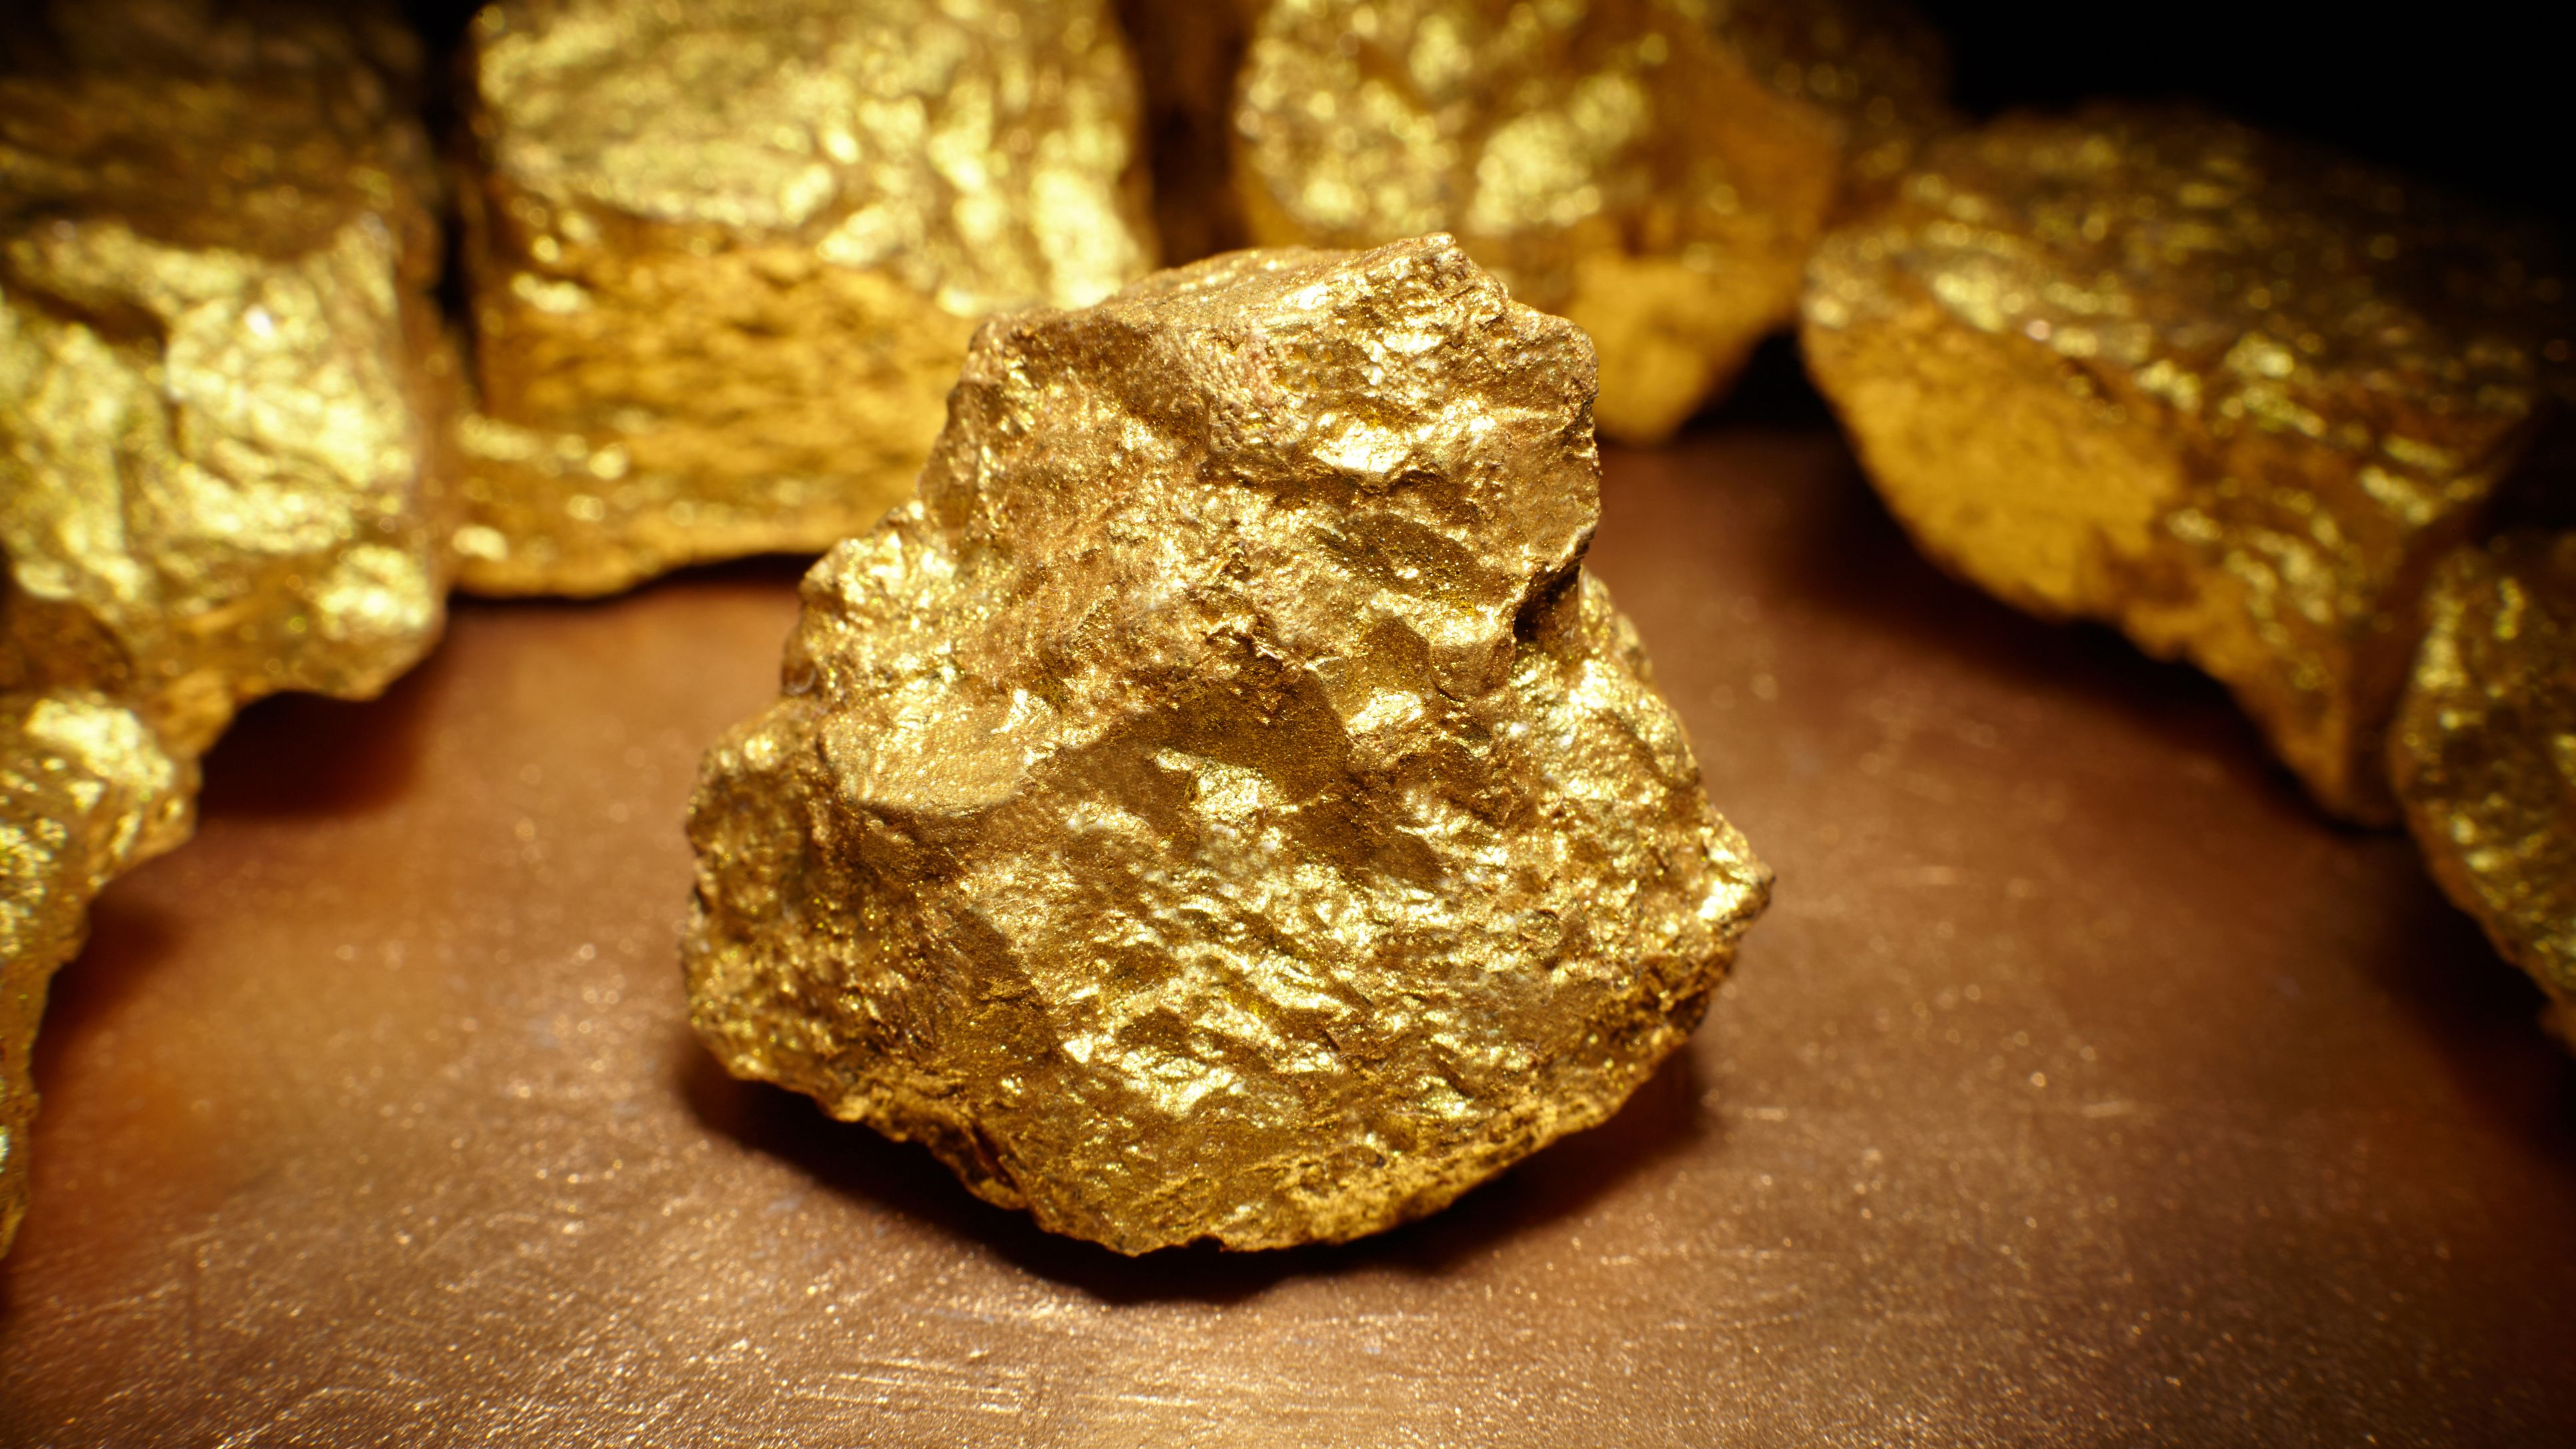 Chemical and Physical Properties of Gold